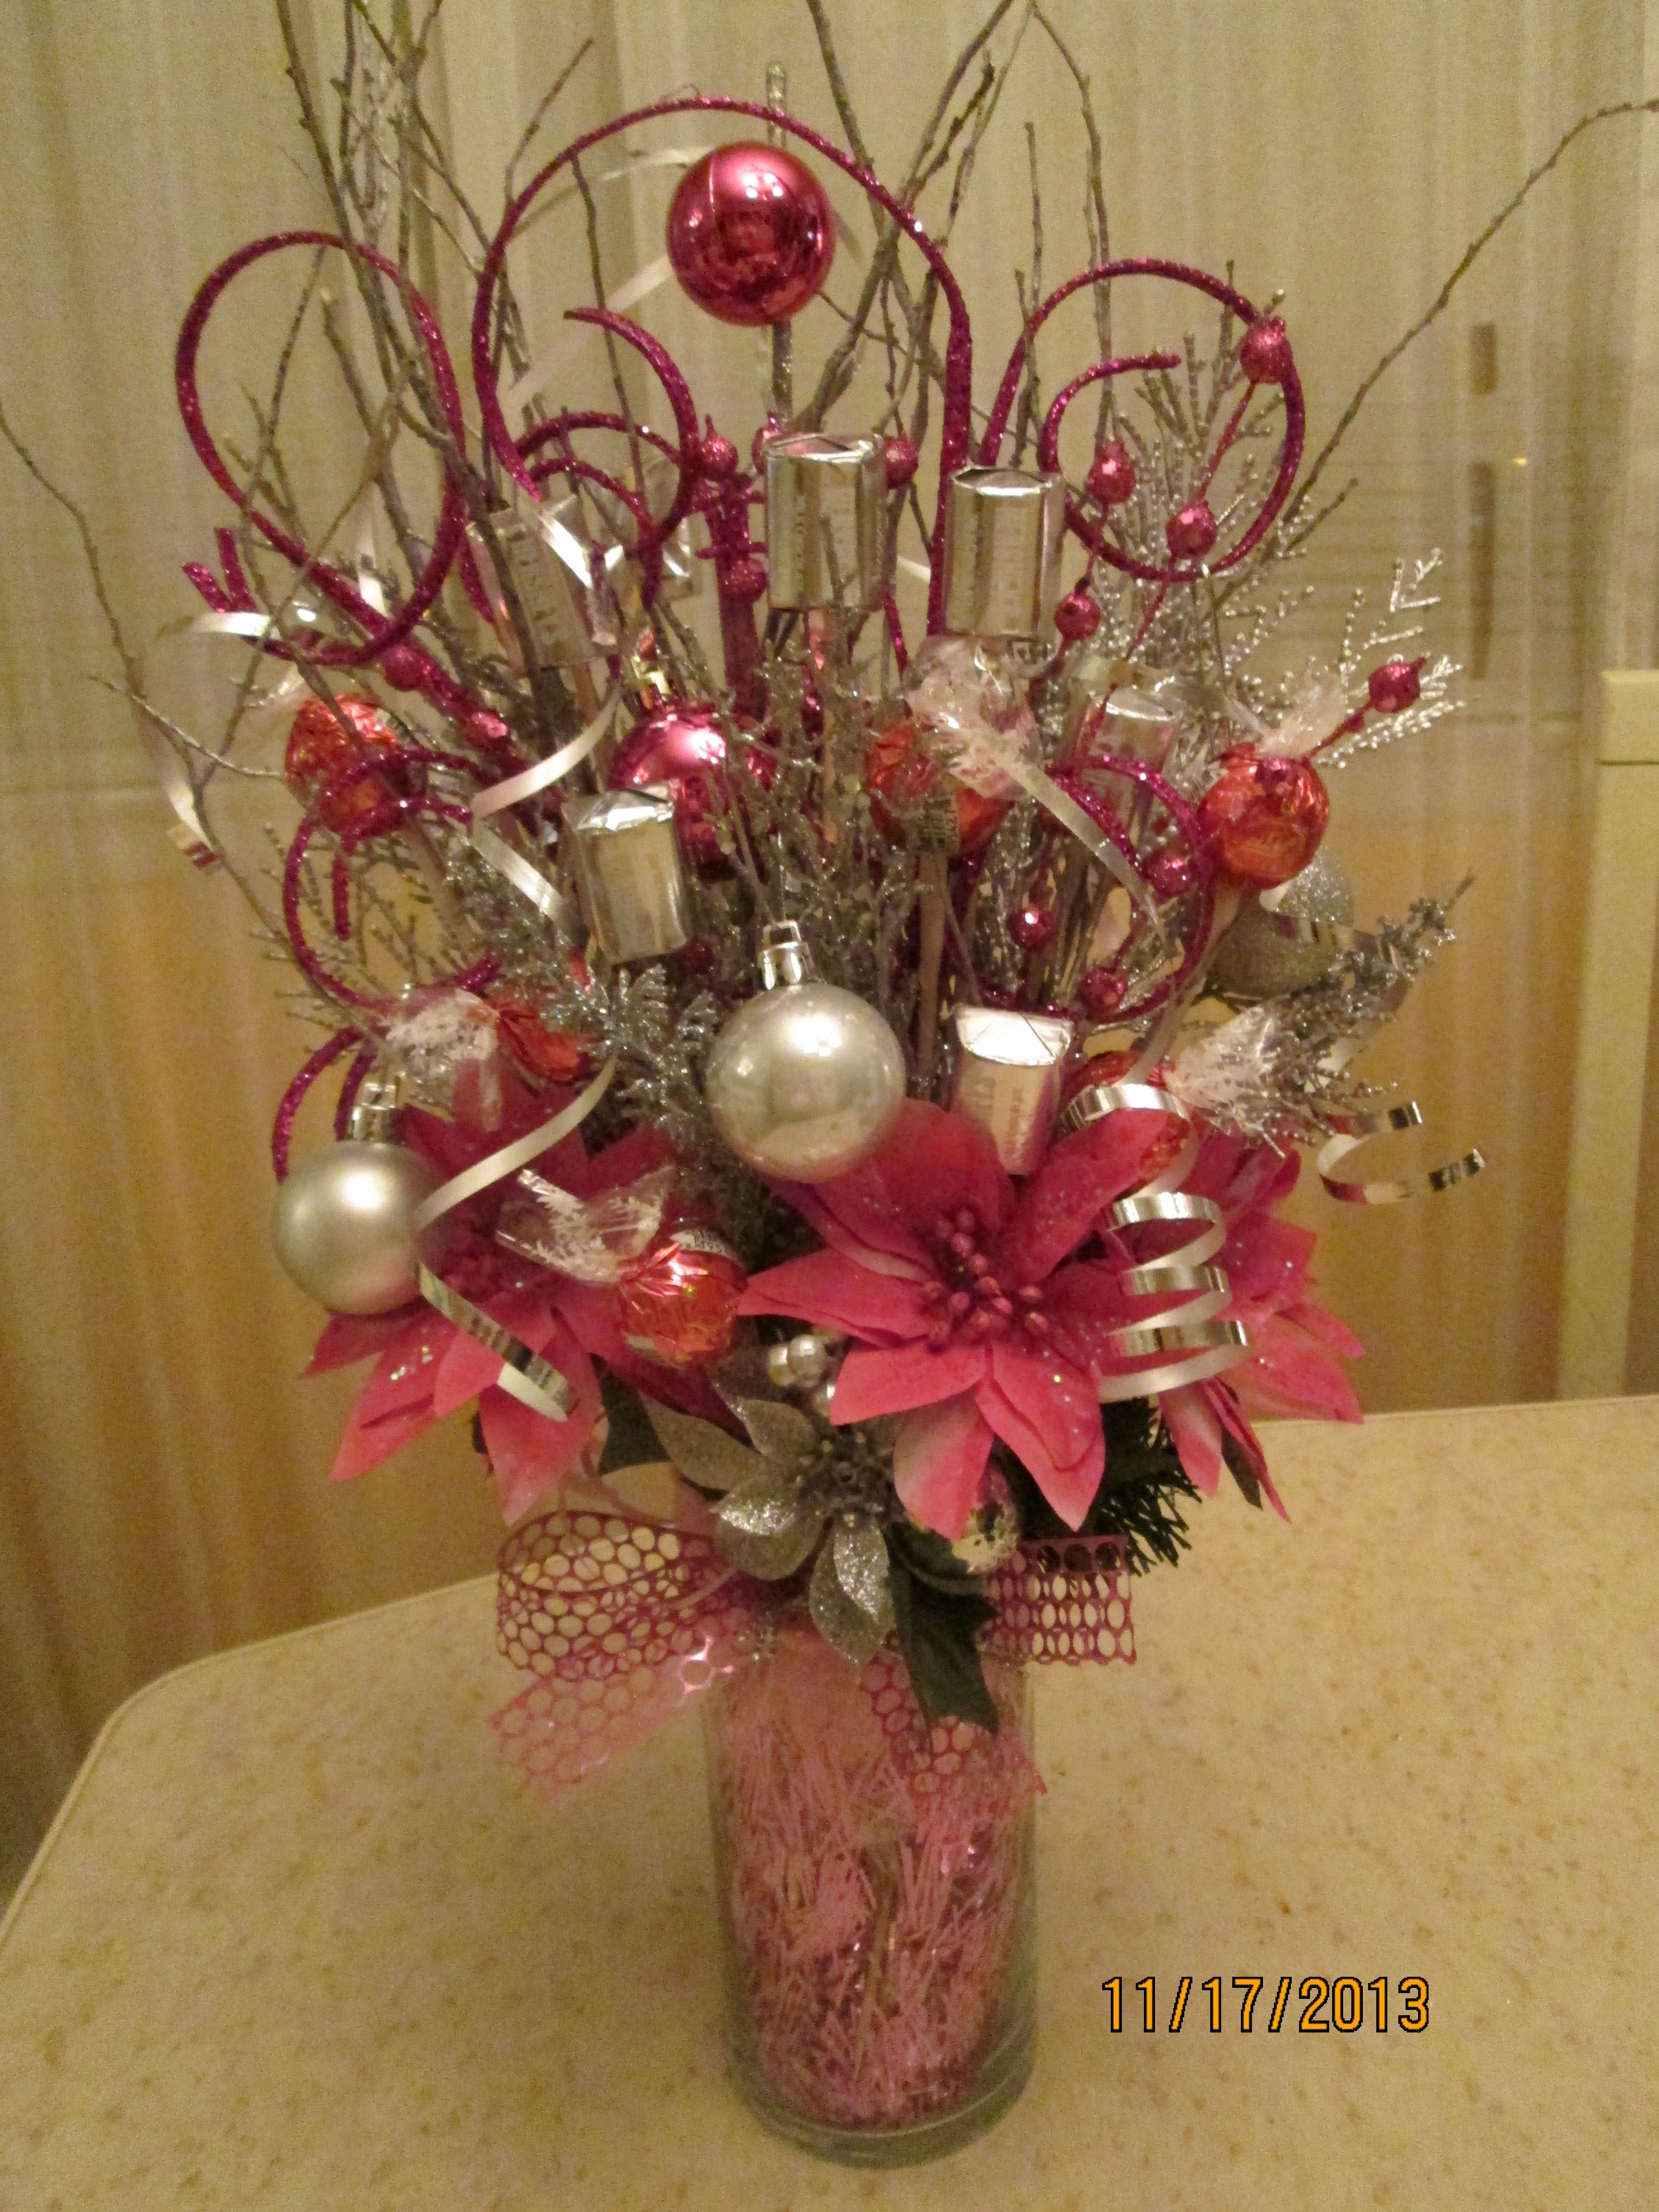 Chocolate bouquet on pinterest candy flowers bouquet of chocolate - Pink Christmas Candy Bouquet By Ana